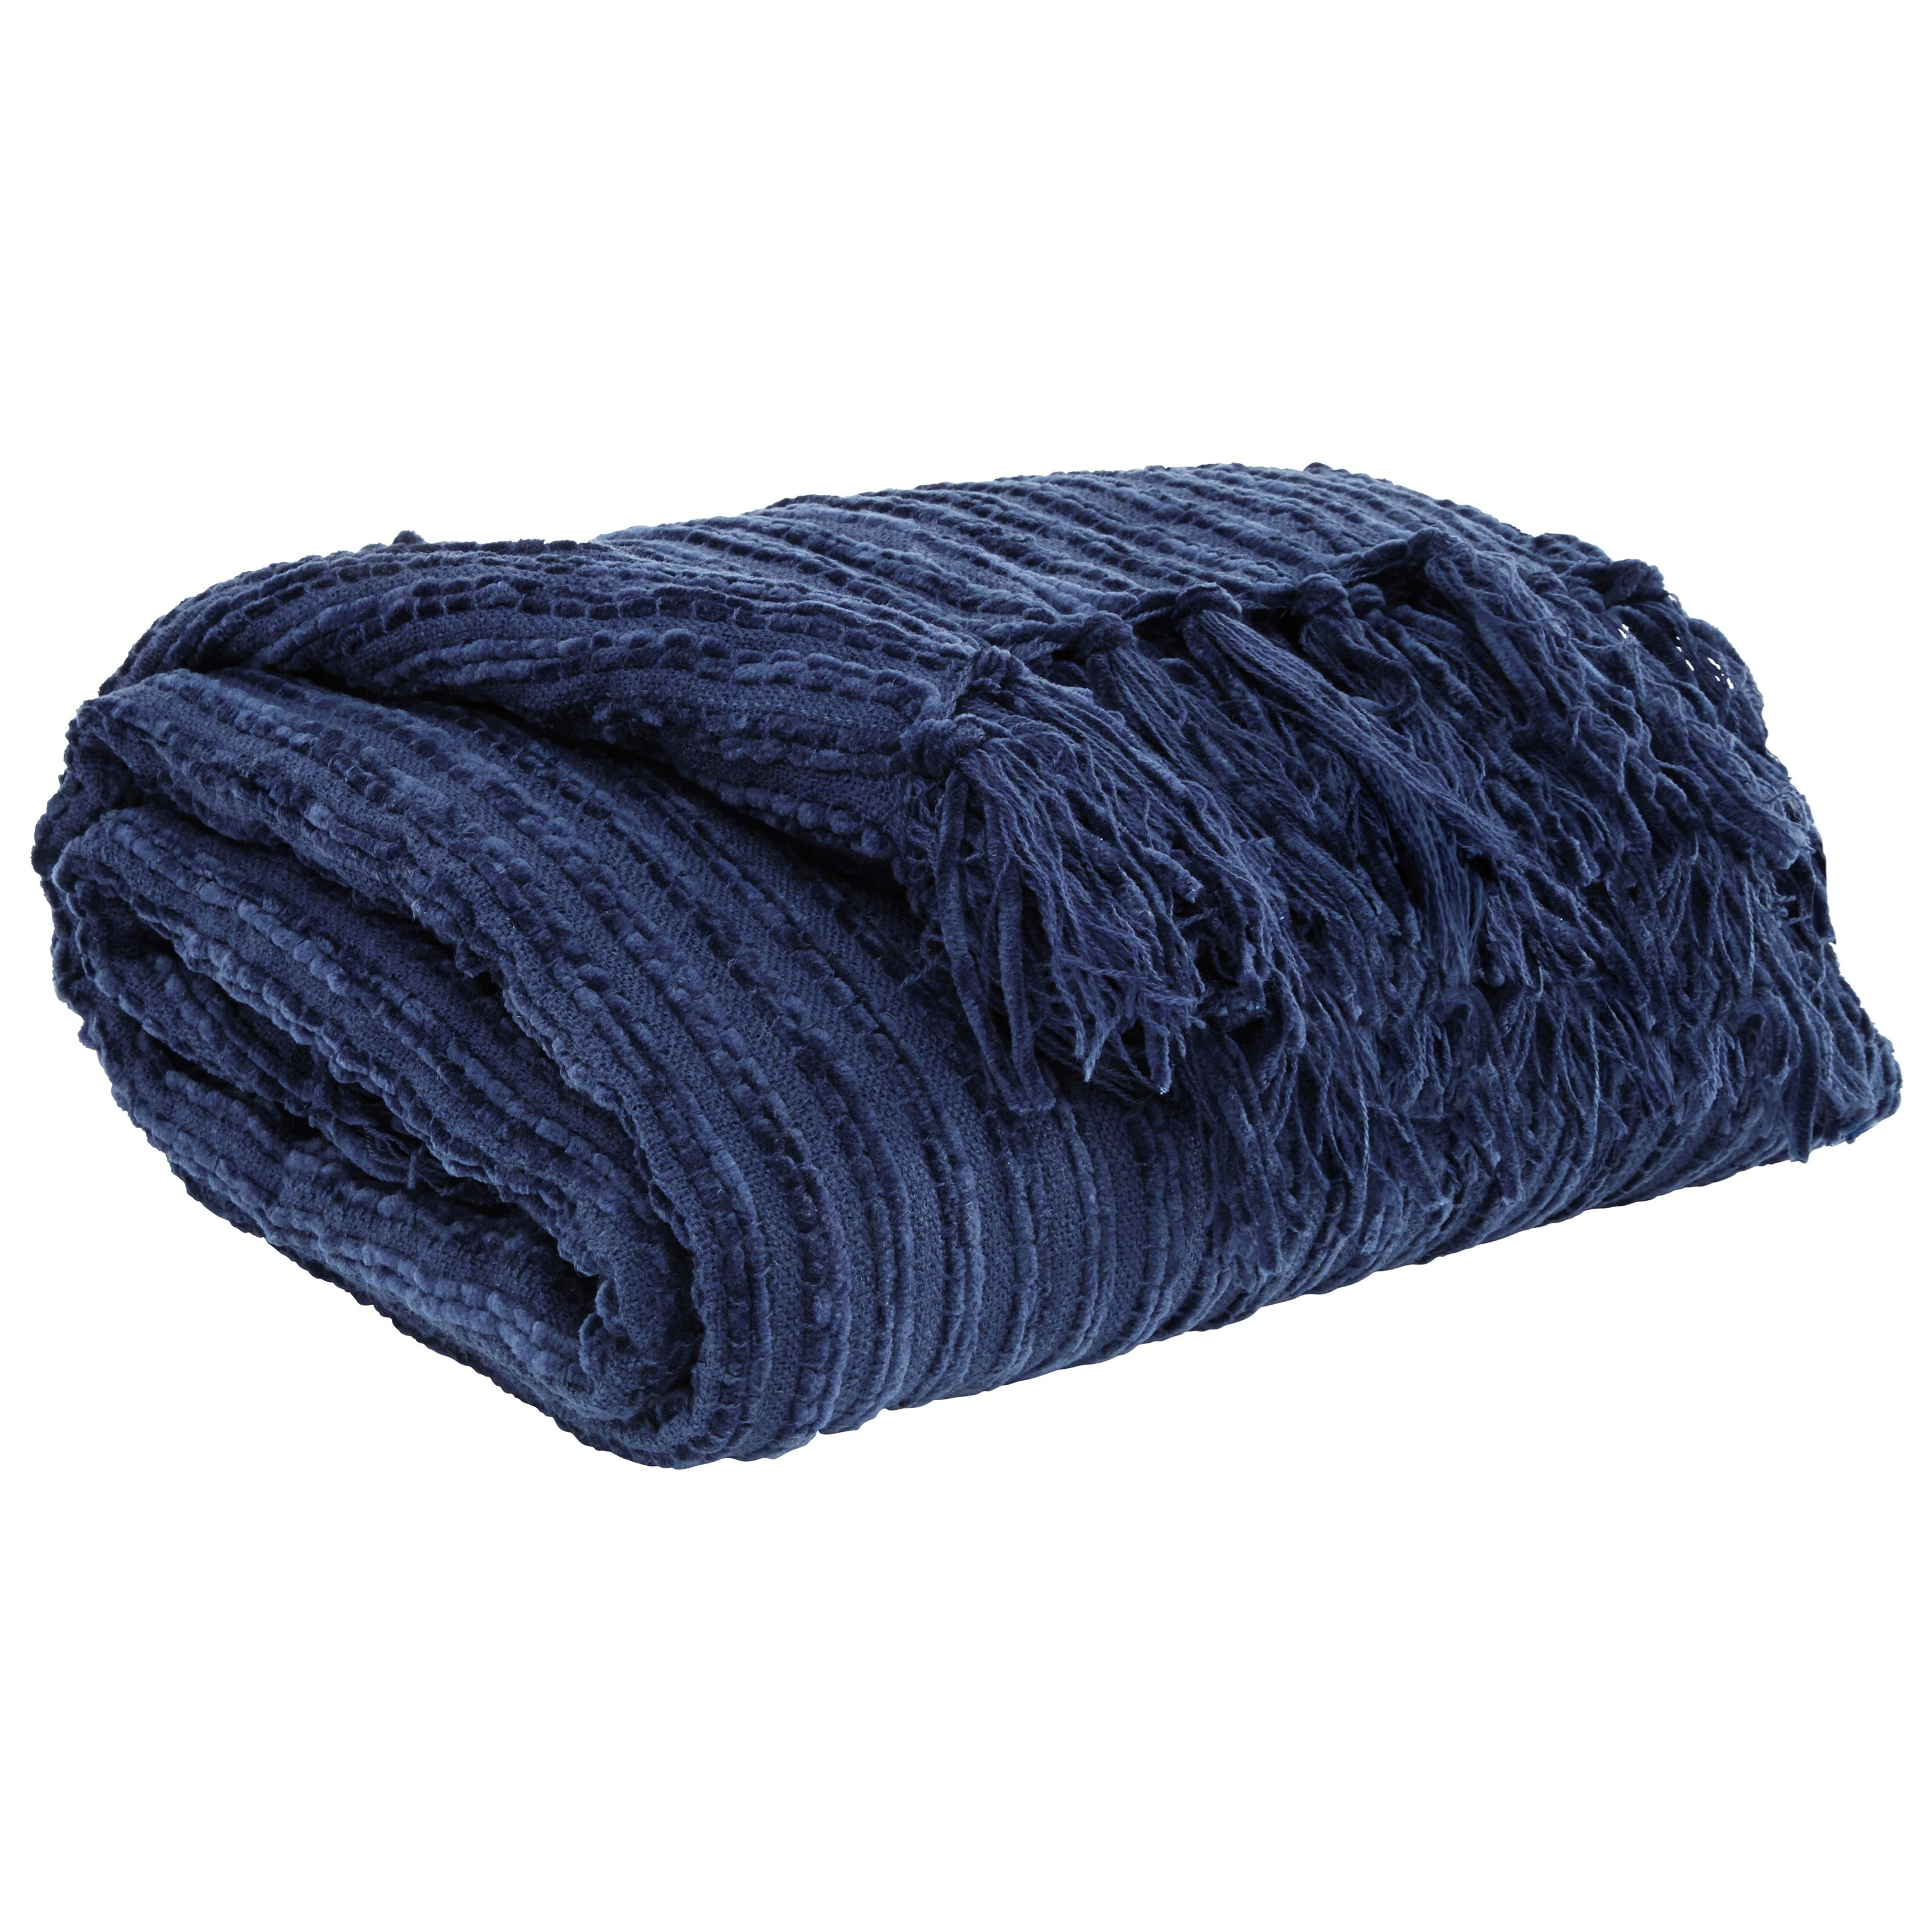 Throws Noland - Navy Throw by Signature Design by Ashley at Sparks HomeStore